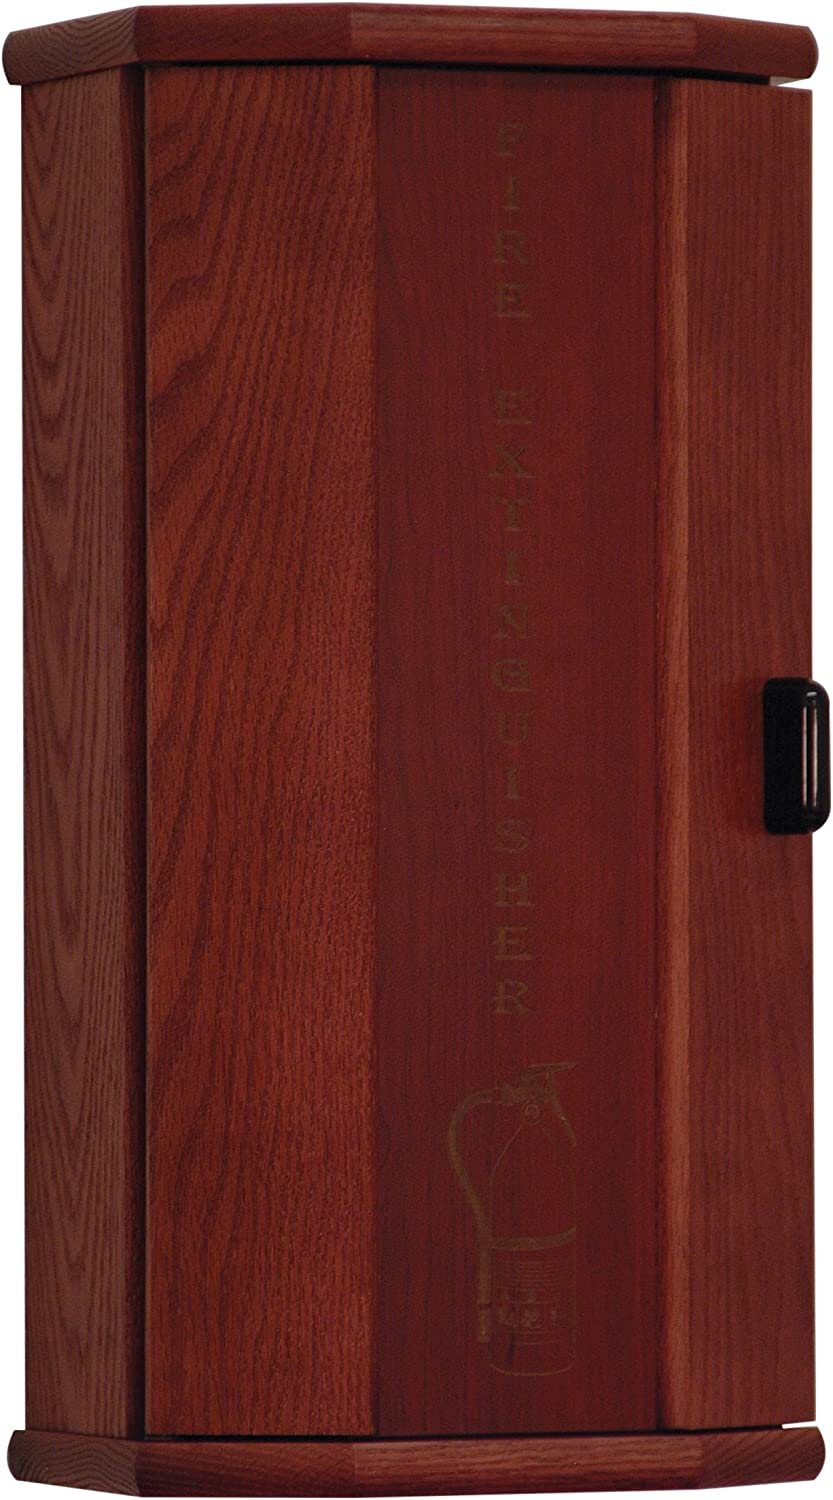 Wooden Mallet Fire Extinguisher Cabinet, 5-Pound, Mahogany Engraved